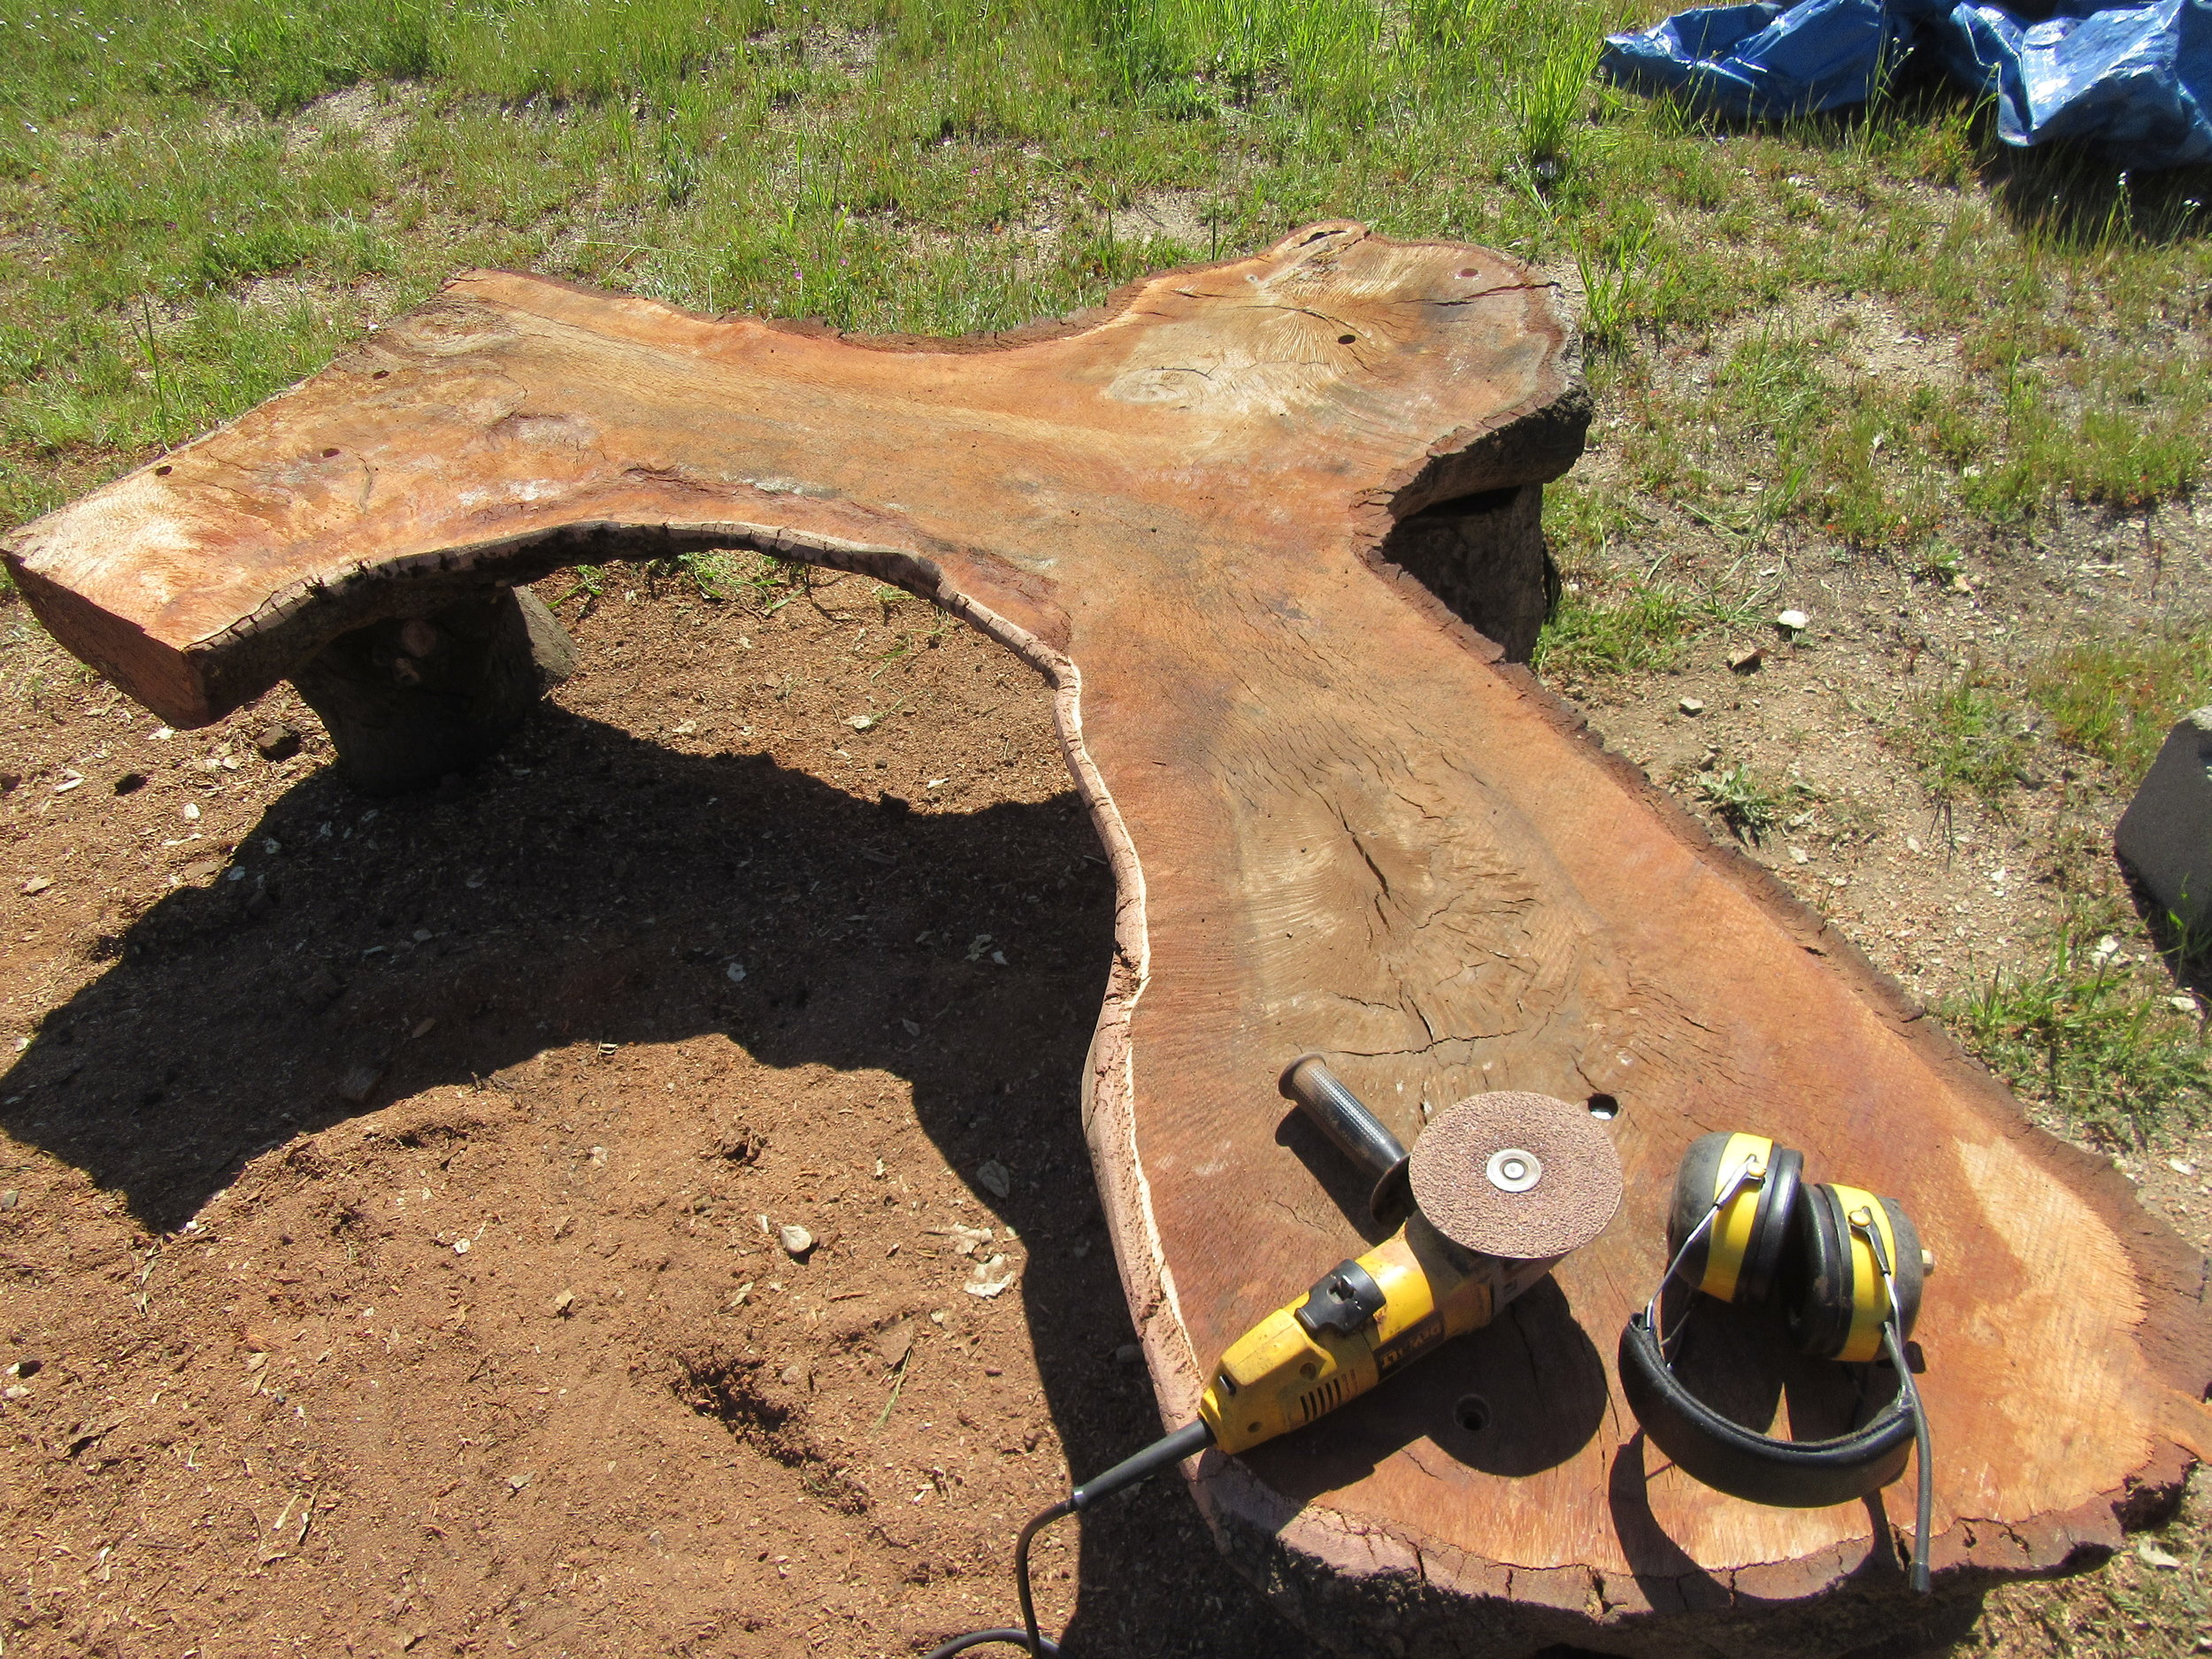 A SANDER AND NOISE PROTECTORS are some of the tools used by woodworking artisan Harold Greene to create the benches made from the fallen wood of Baba's Tree at Meher Mount. (Photo: Sam Ervin, April 20, 2018)